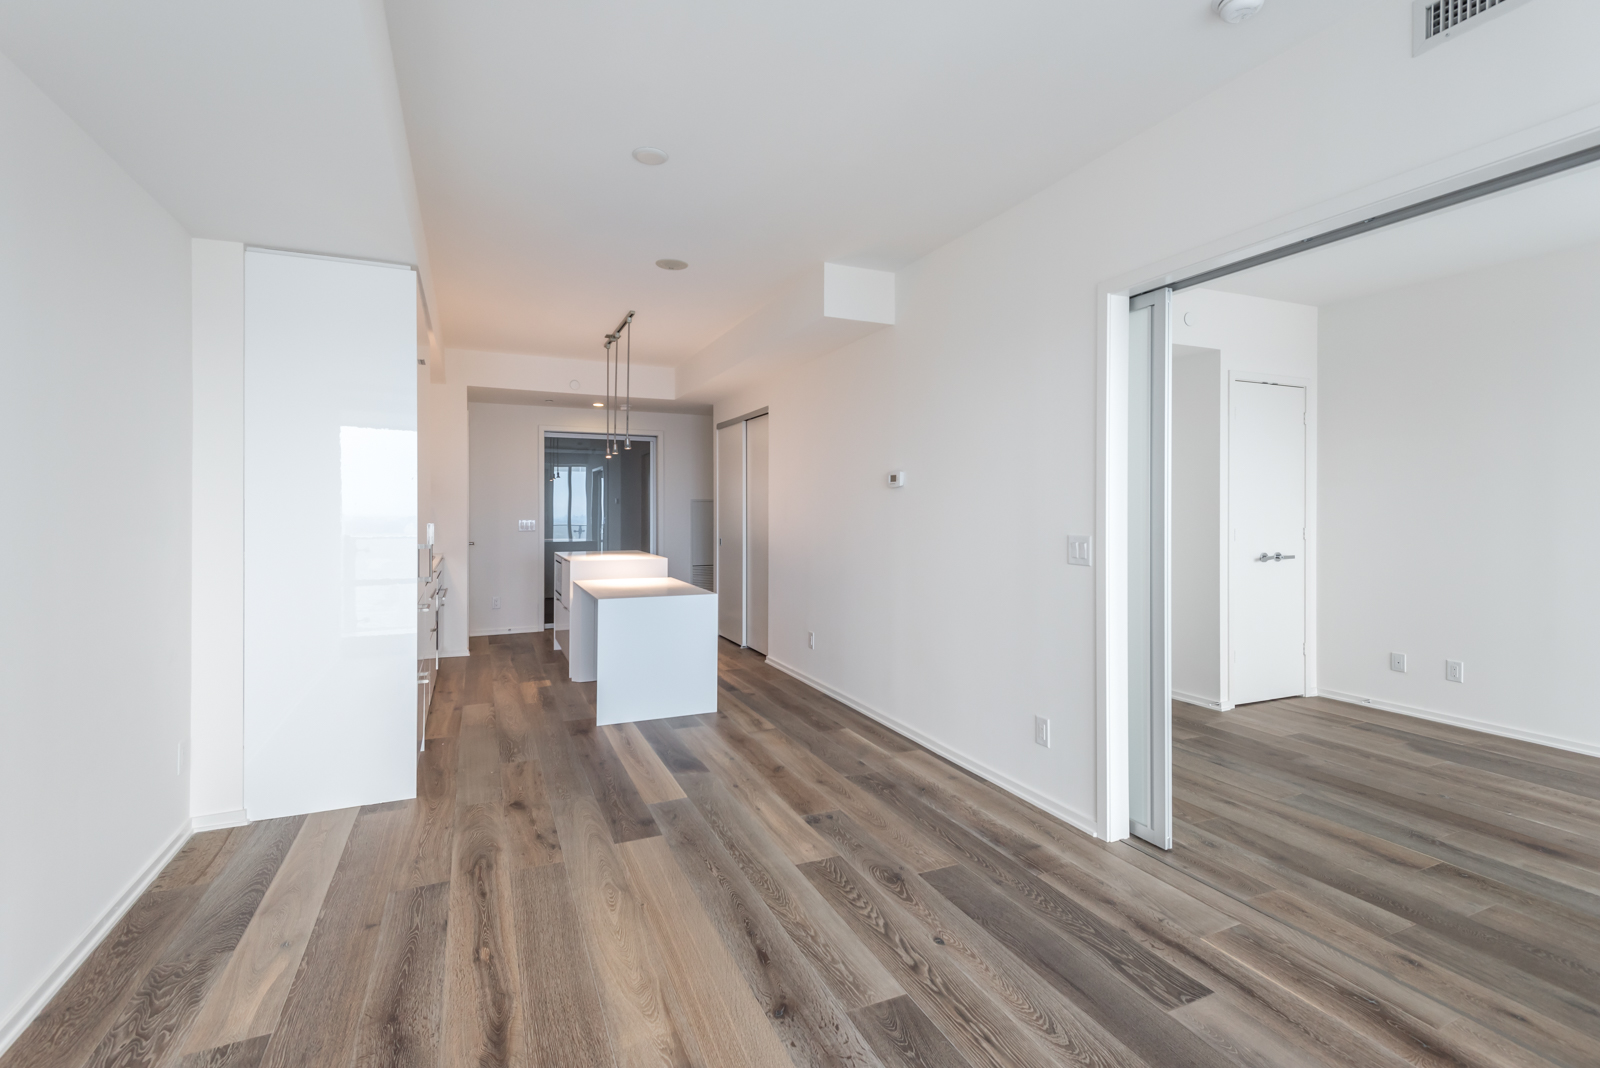 Photo of 1 Bloor showing kitchen, living room, and bedroom. Because, so, due to, while, since, therefore same, less, rather, while, yet, opposite, much as, so either the best Toronto real estate agents.